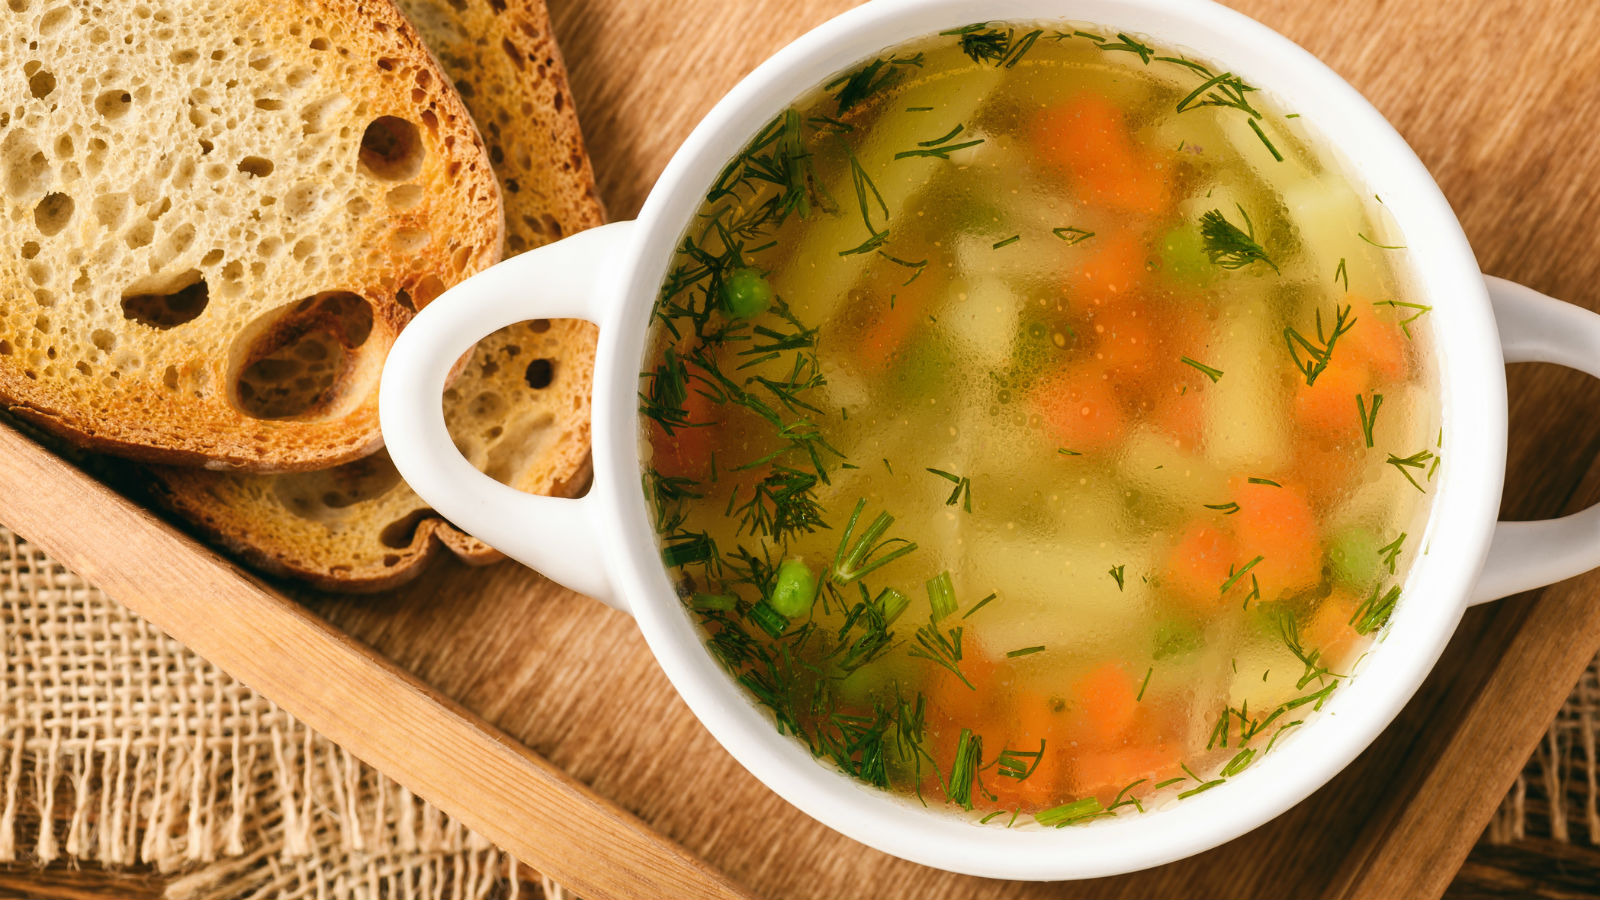 What Foods Do Jewish People Eat Most